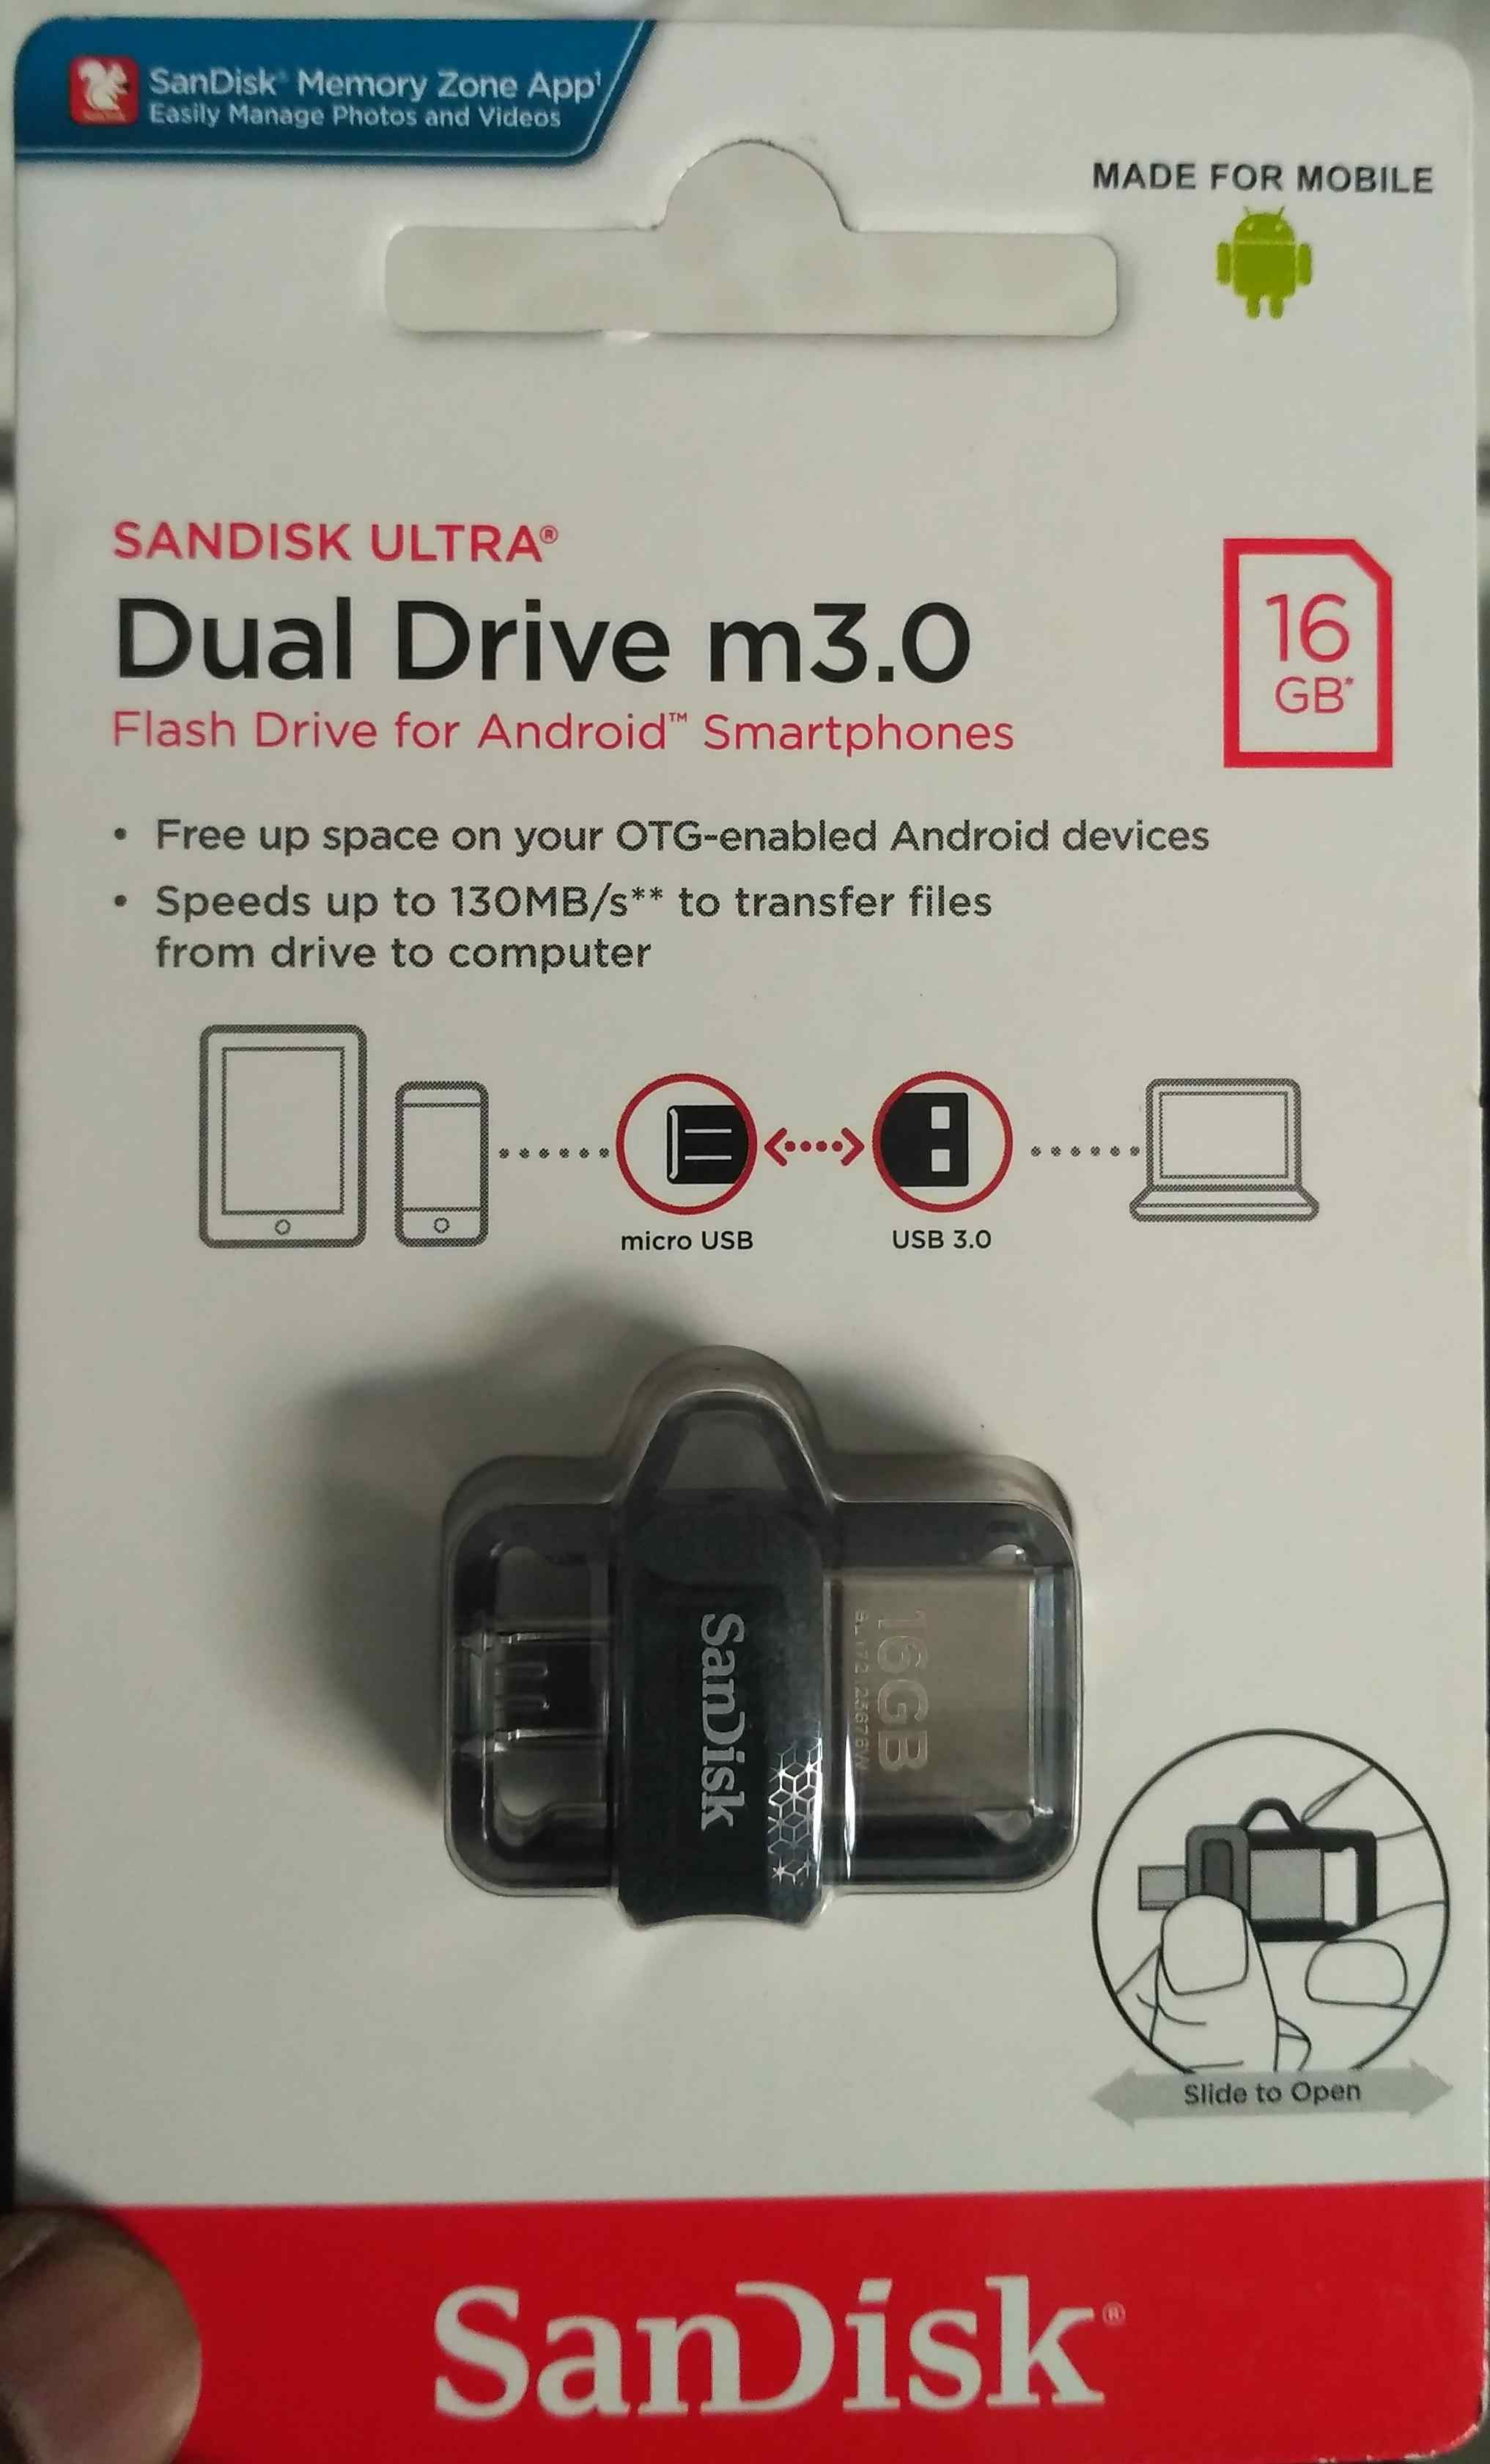 Sandisk Ultra Dual Drive 32 Gb In Hyderabad Buynuse Otg M3 16gb Photo Of Product